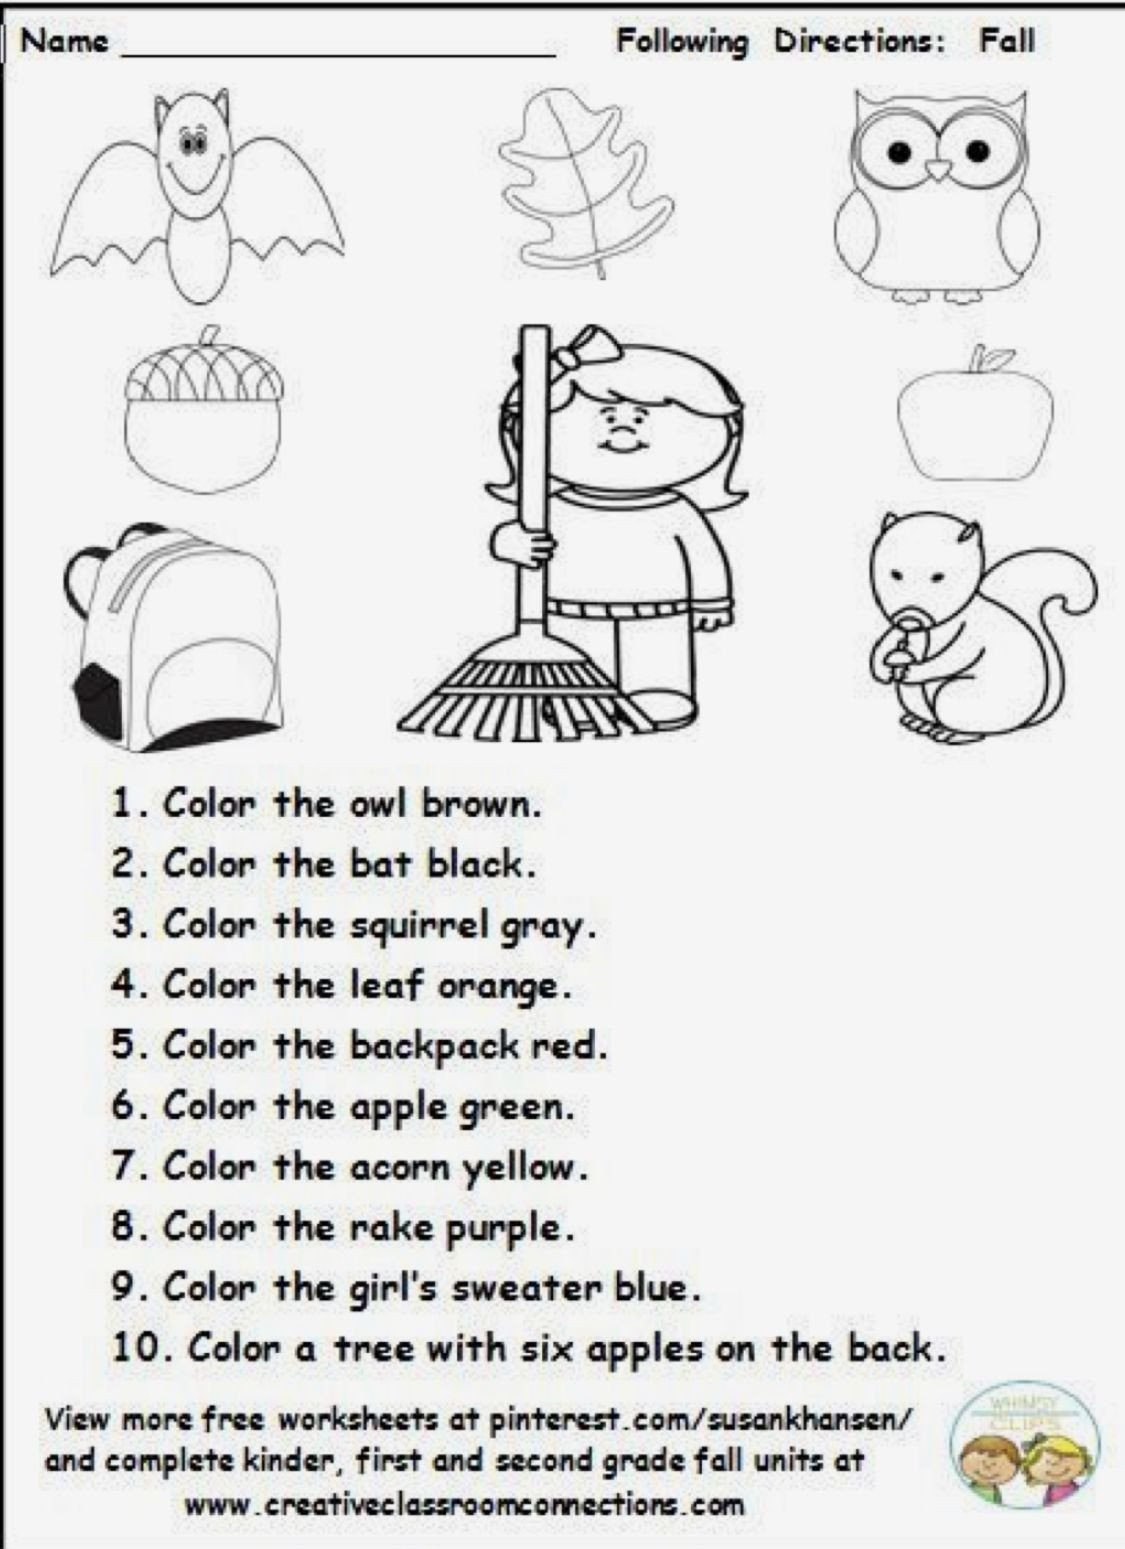 Following Directions Coloring Worksheet Following Directions